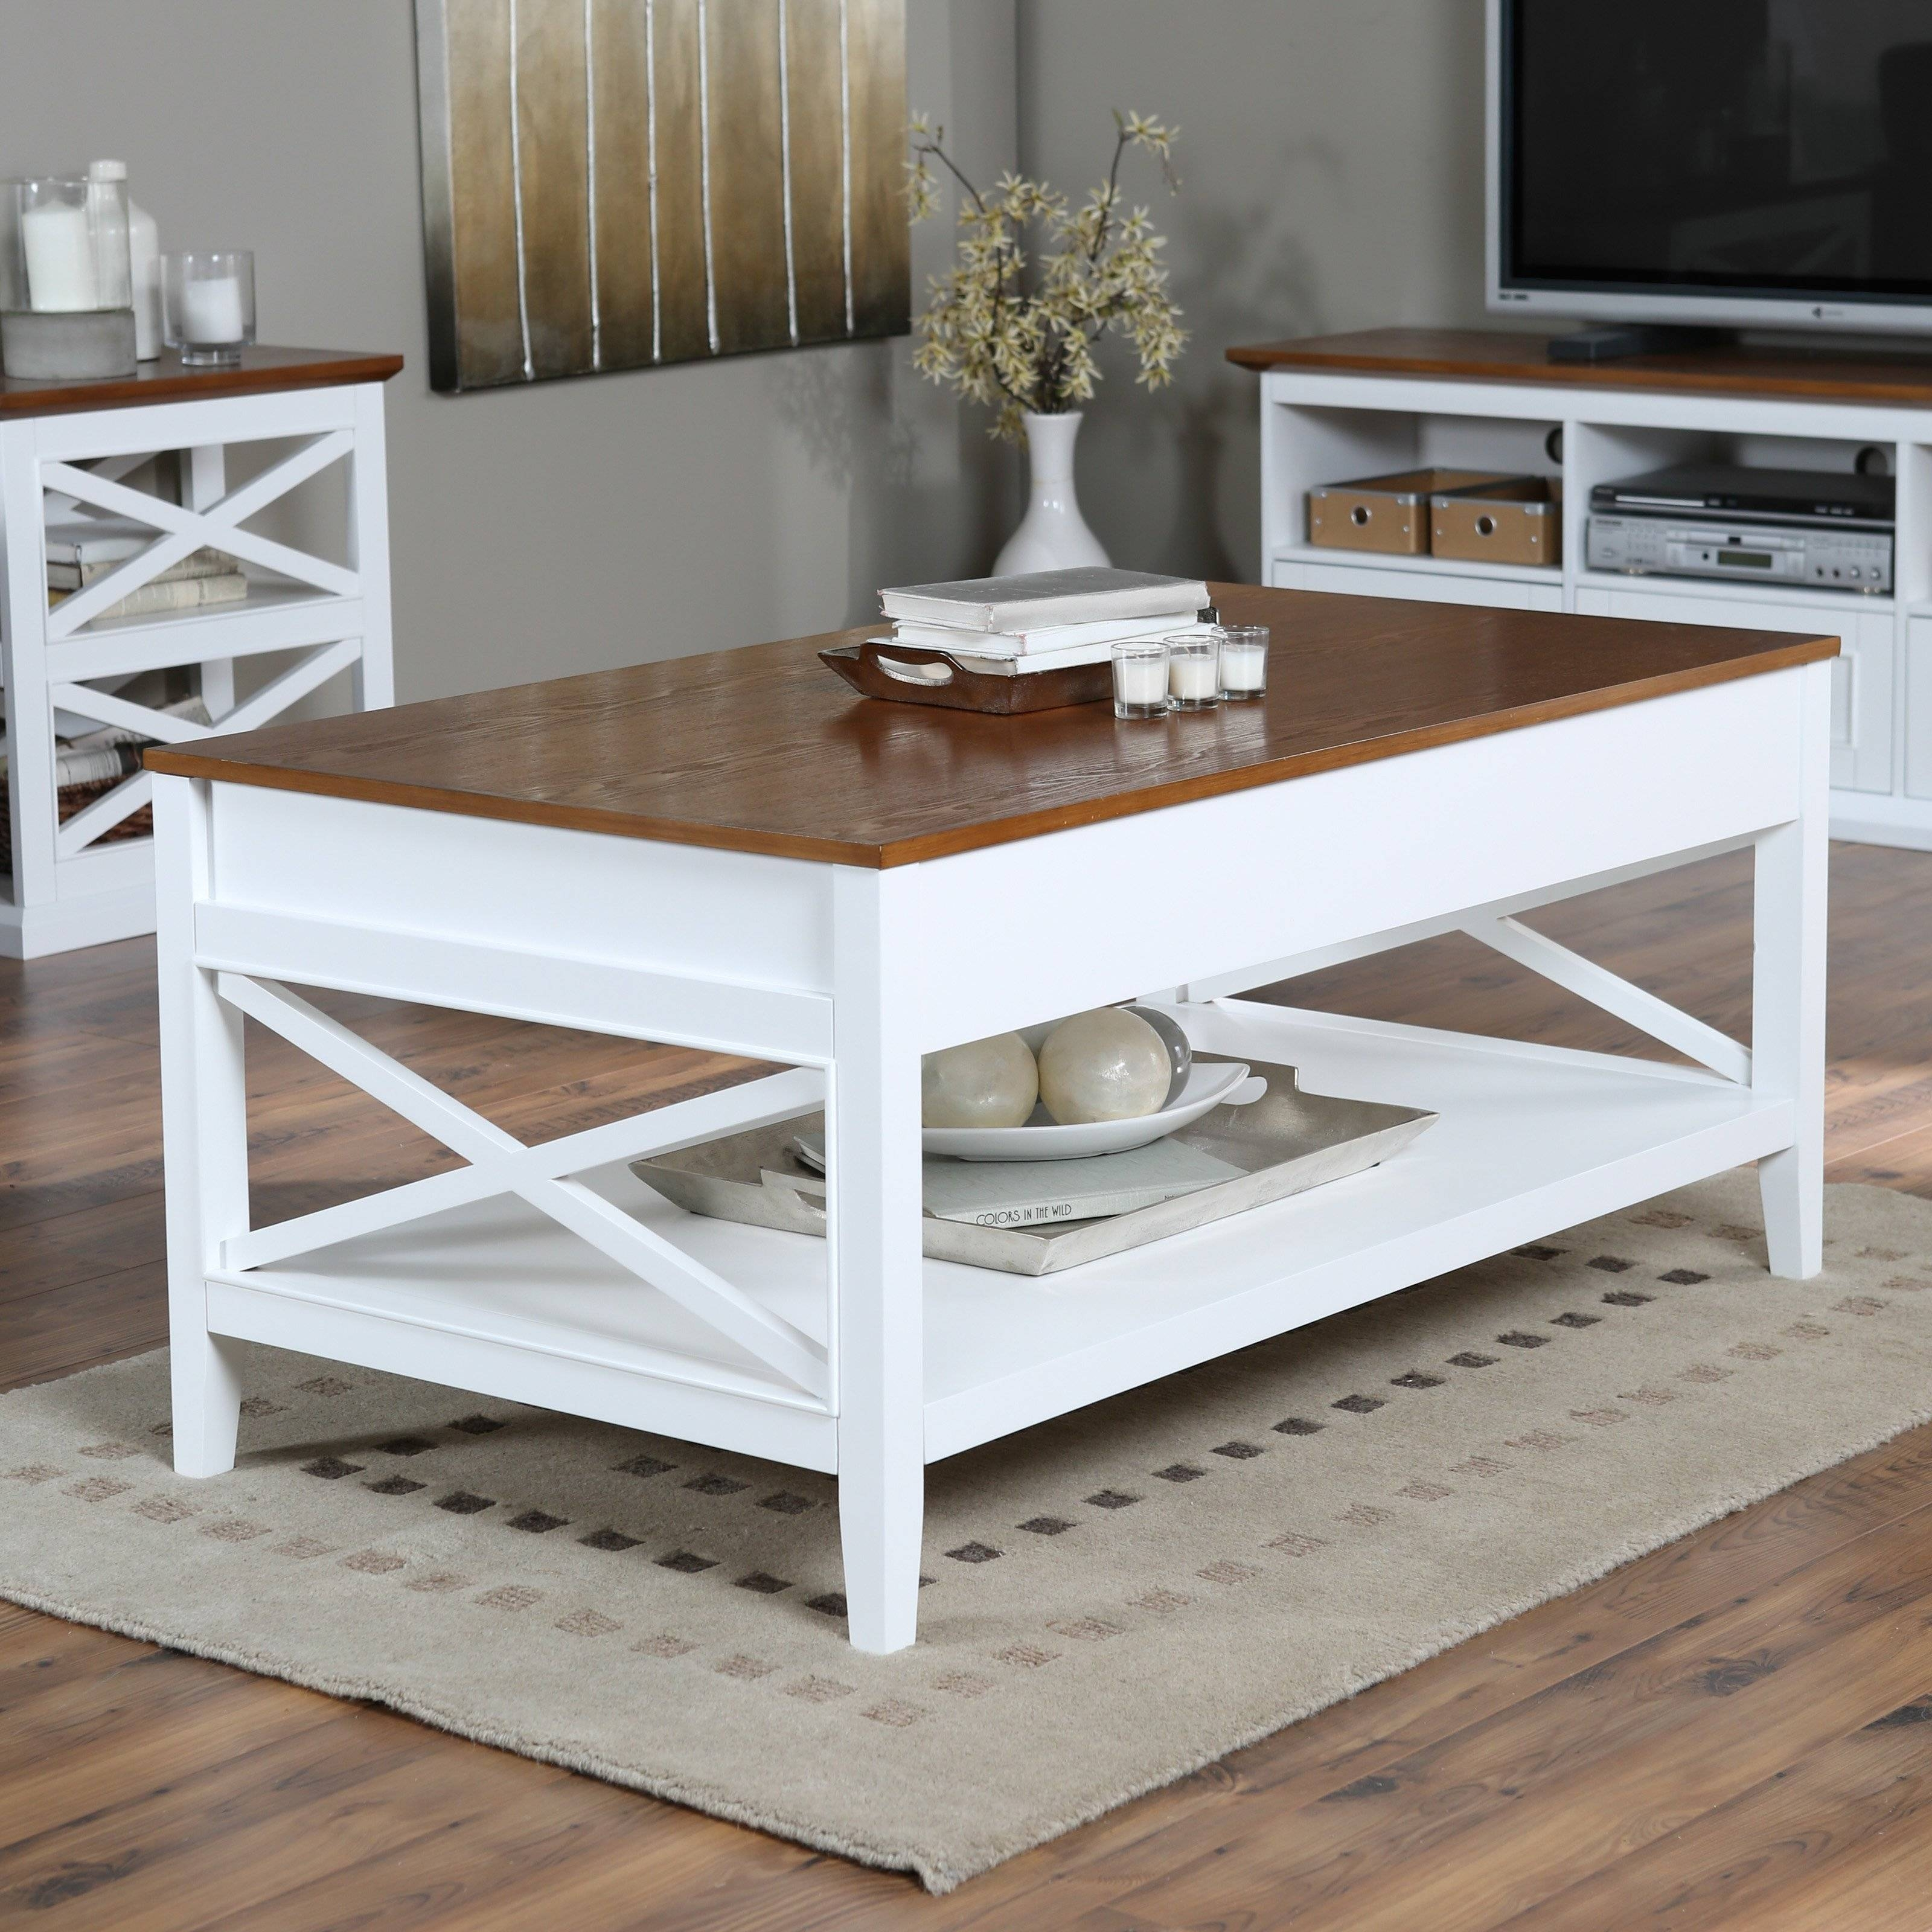 Belham Living Hampton Storage And Lift Top Coffee Table | Hayneedle Throughout Lift Coffee Tables (View 22 of 30)